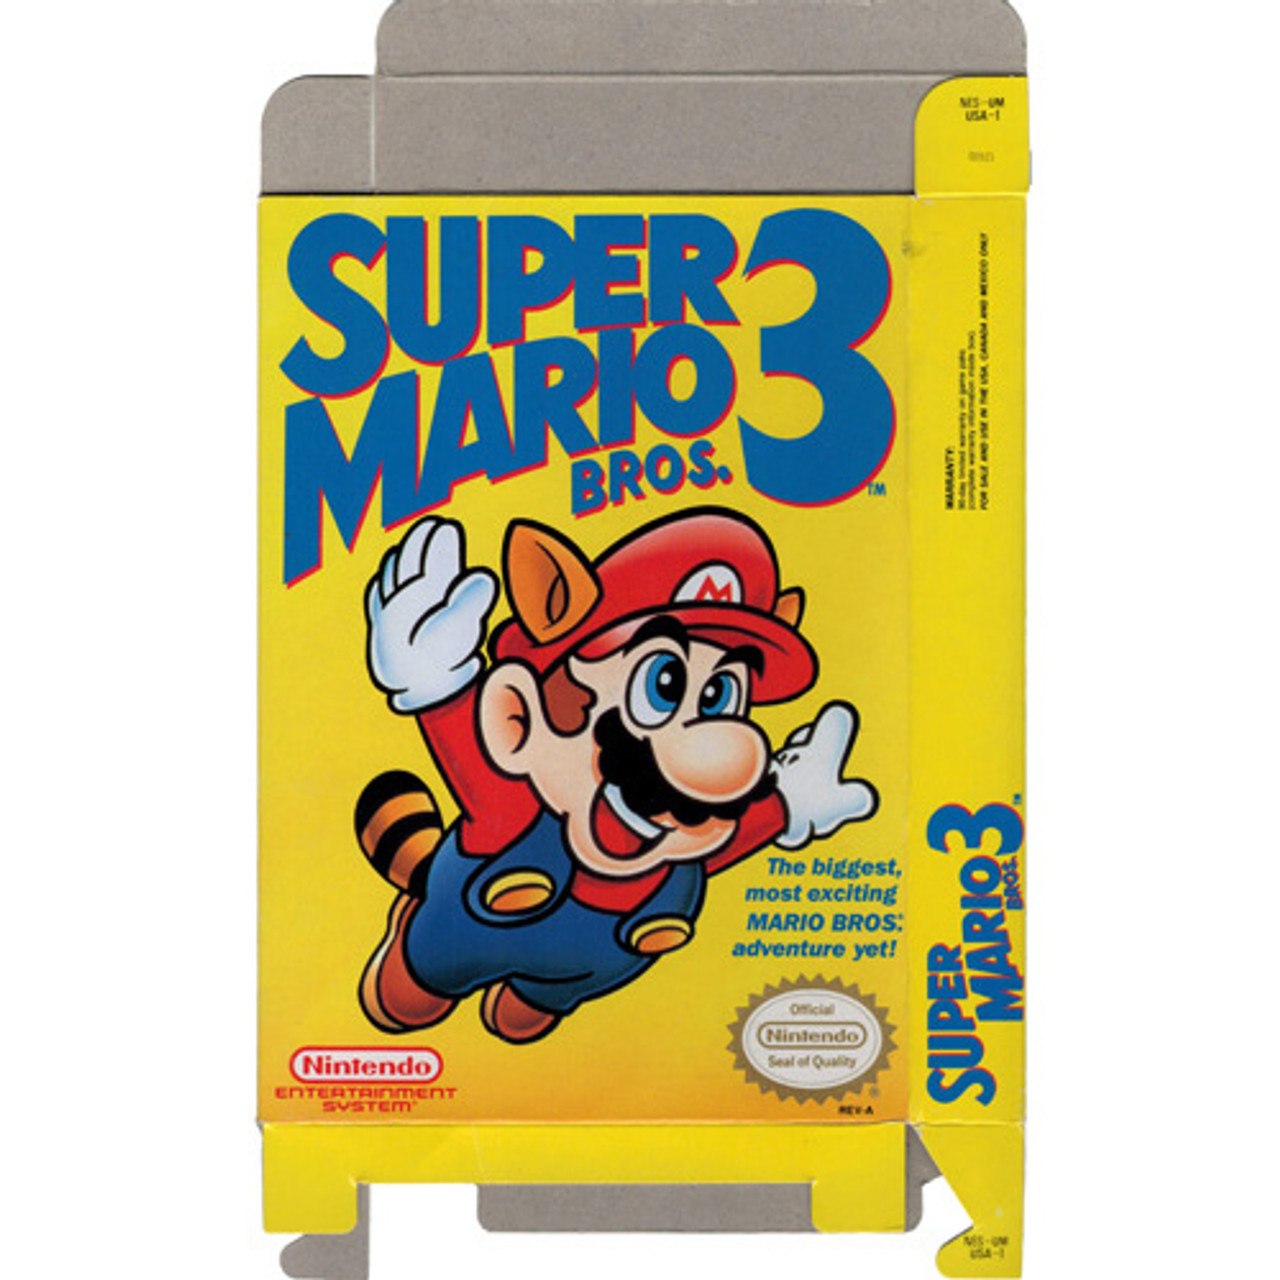 Super Mario Bros  3 - Empty NES Box